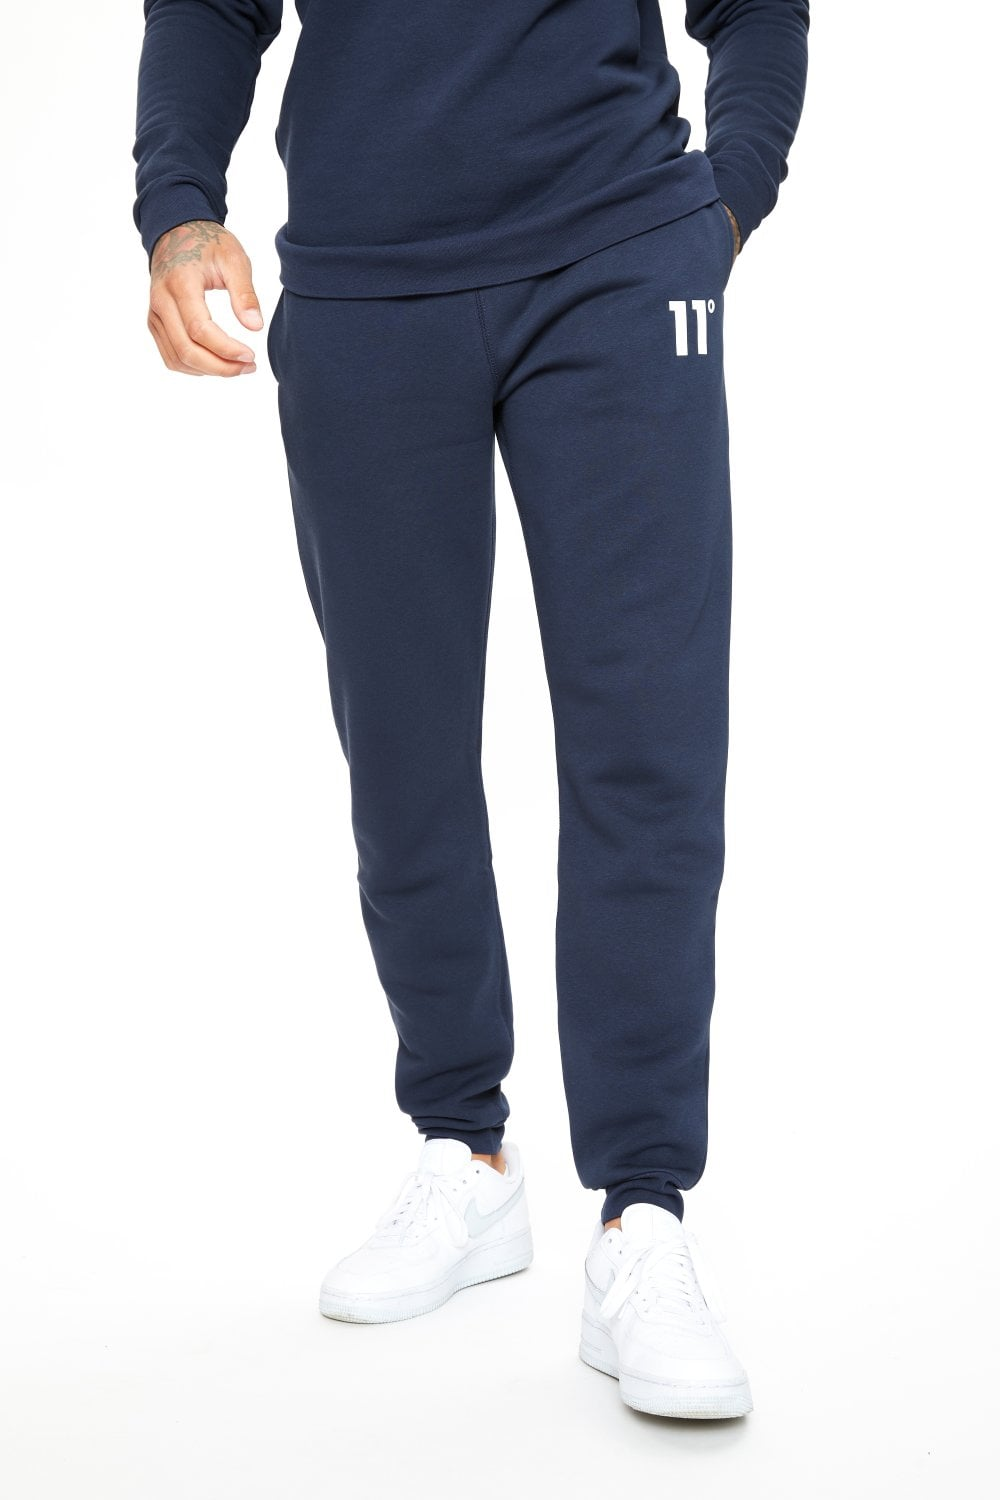 11 Degrees Core Joggers Regular Fit - Navy